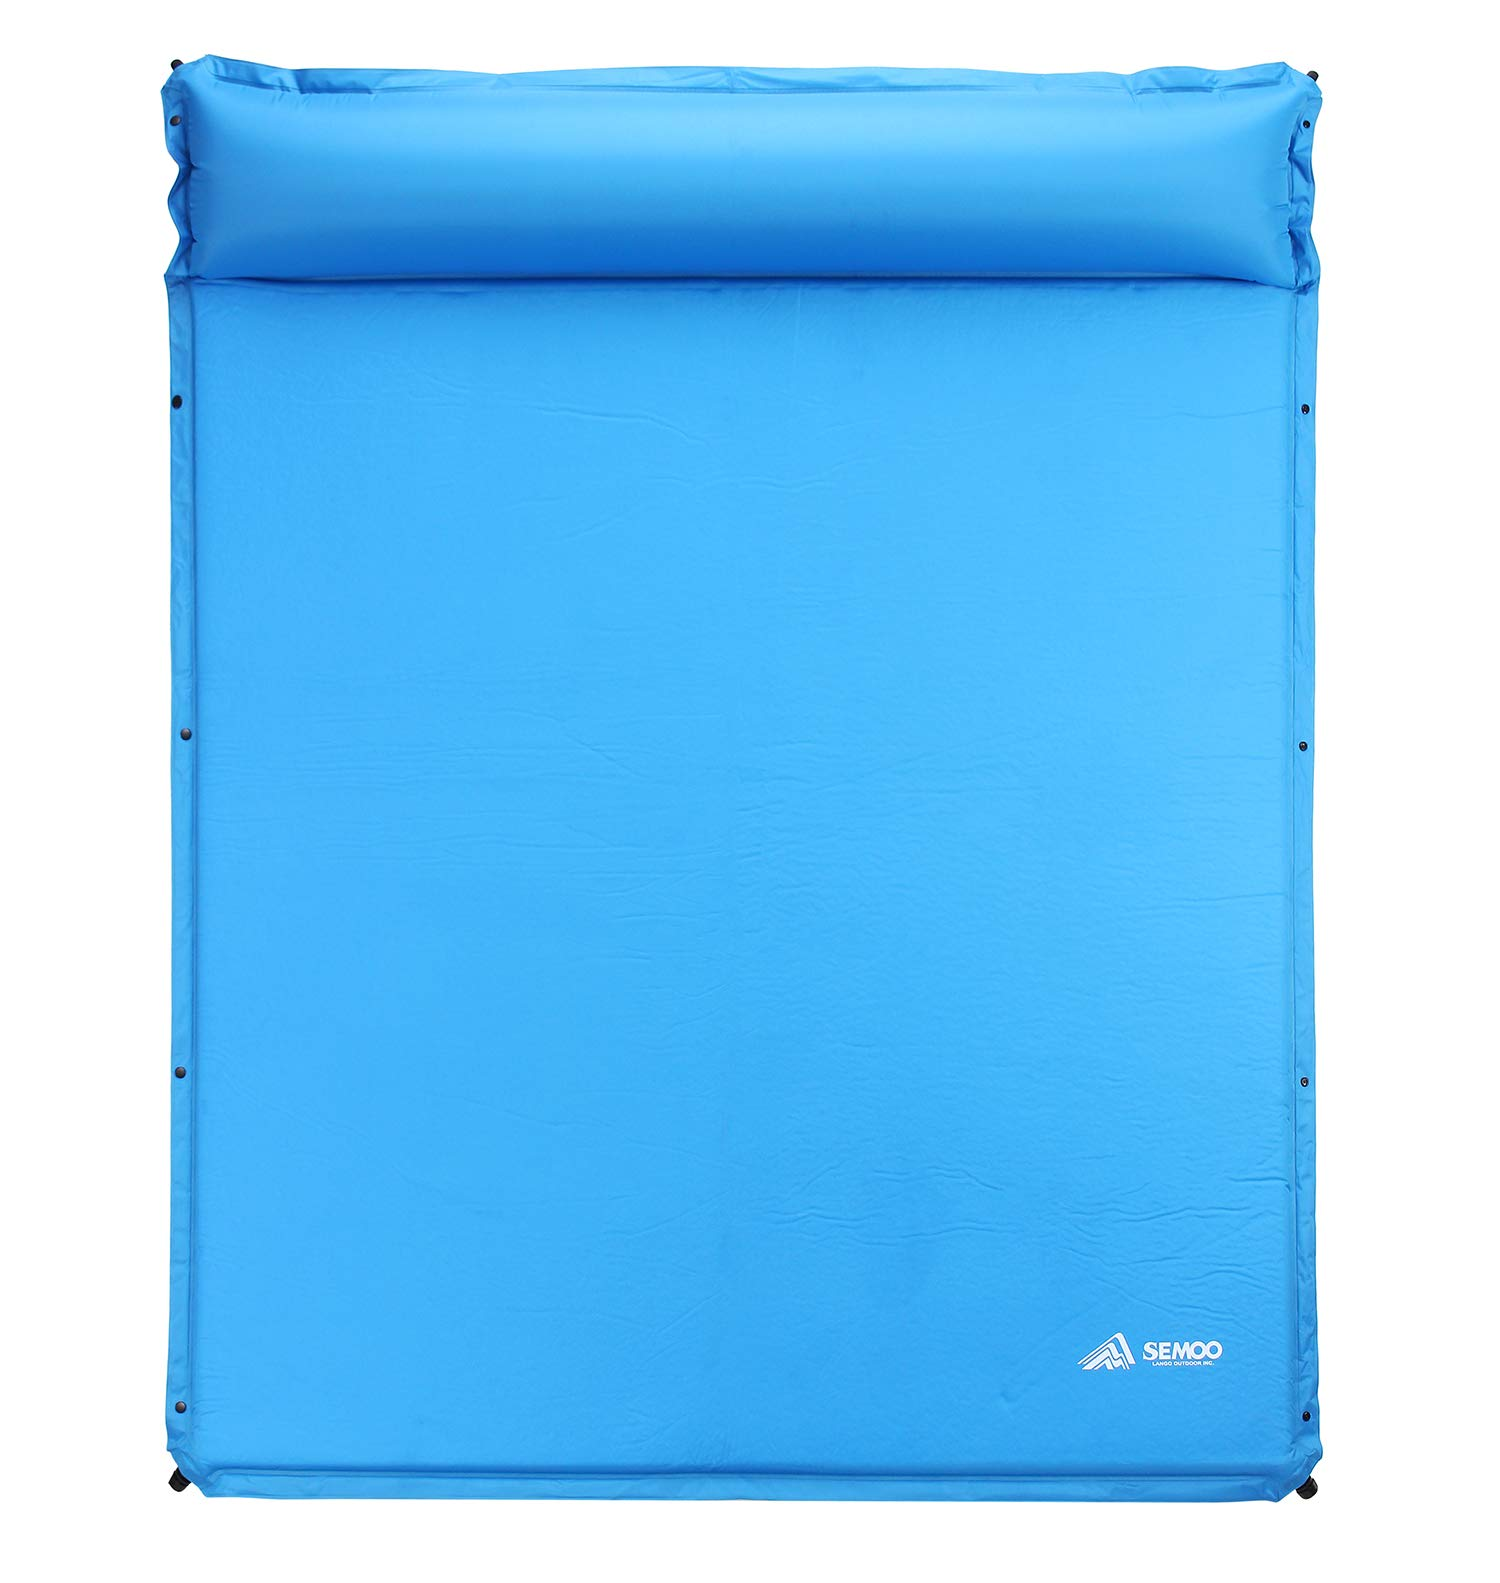 SEMOO Self-Inflating Camping Sleeping Pads Lightweight Comfort 1.2 Inch Thick Water Repellent Coating Mats Great for Indoor Outdoor Backpacking Hiking (Blue with Pillow 3 Person) by SEMOO